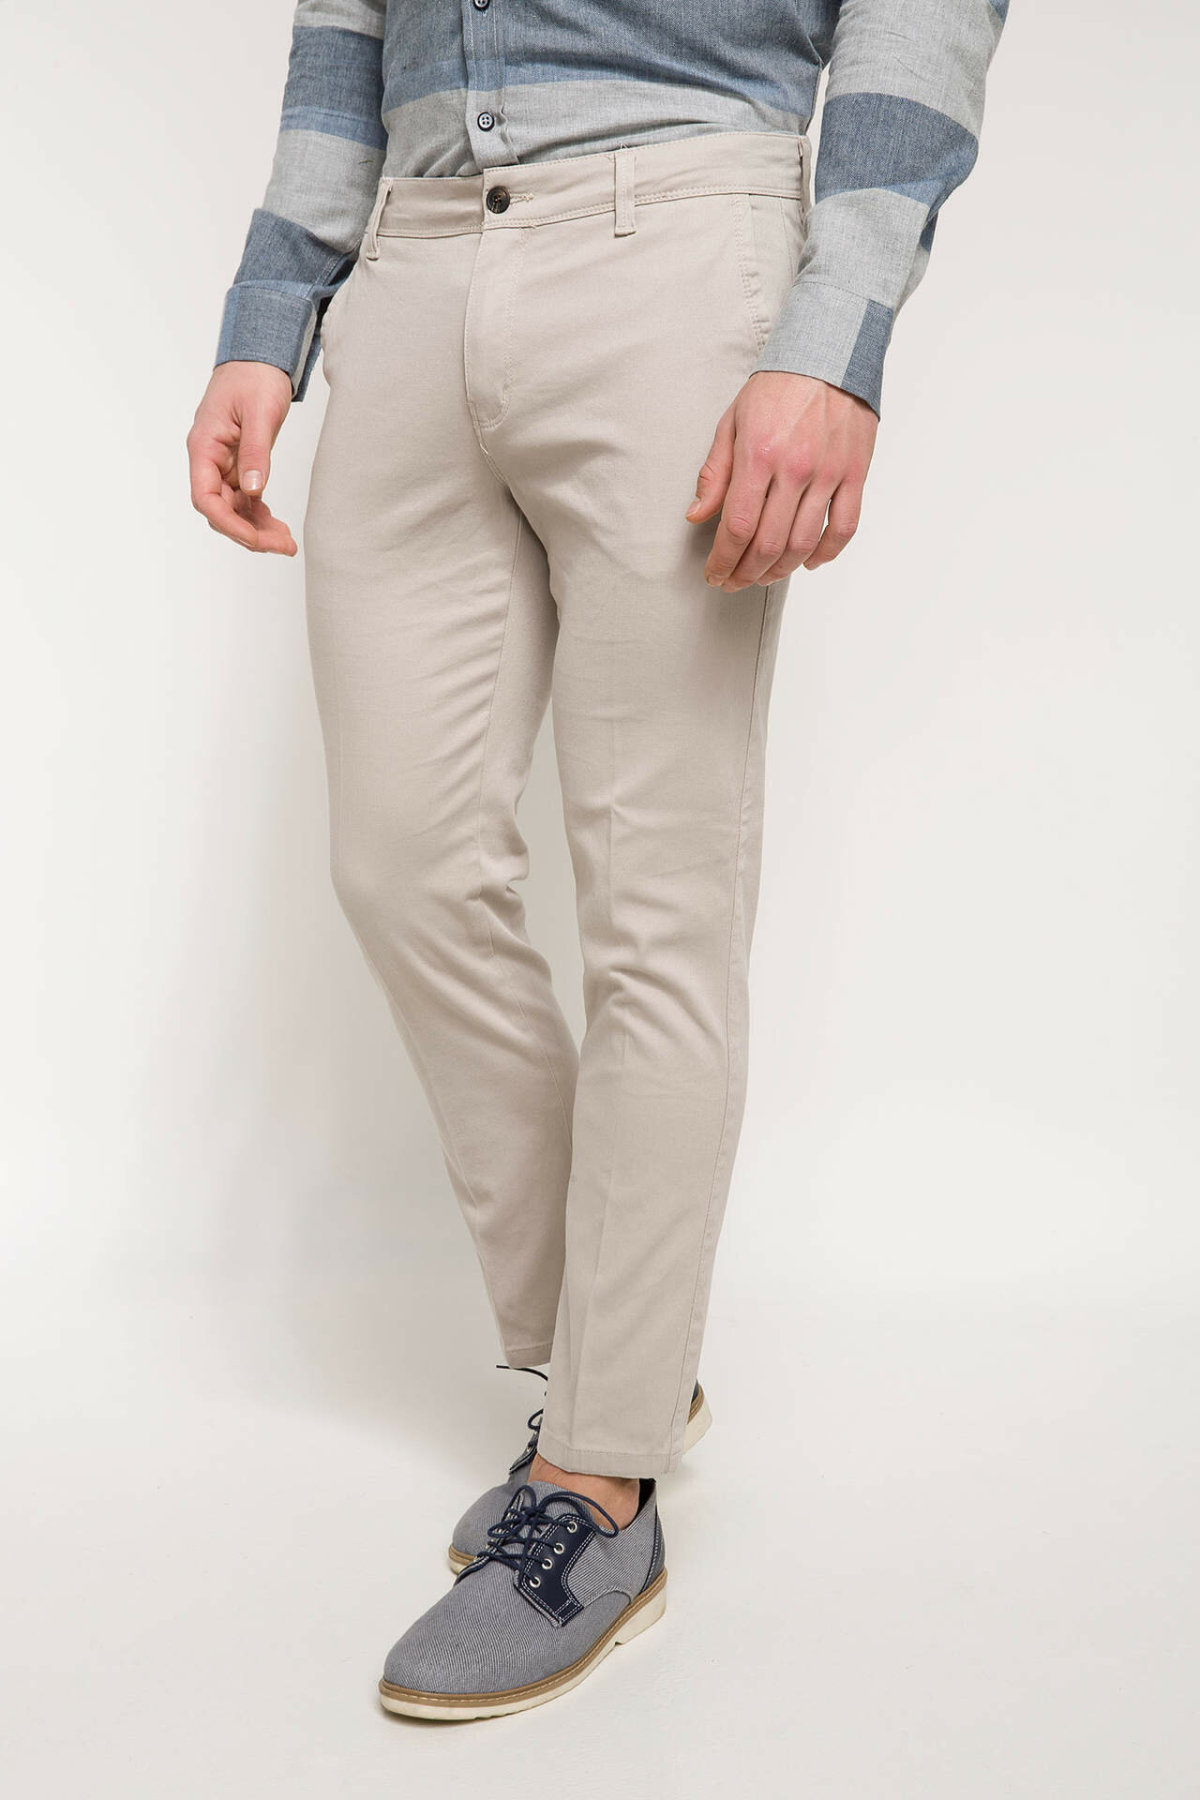 DeFacto Man Spring Smart Casual Mid-waist Long Pants Men White Solid Color Bottoms Male Business Trousers-I2060AZ18SP